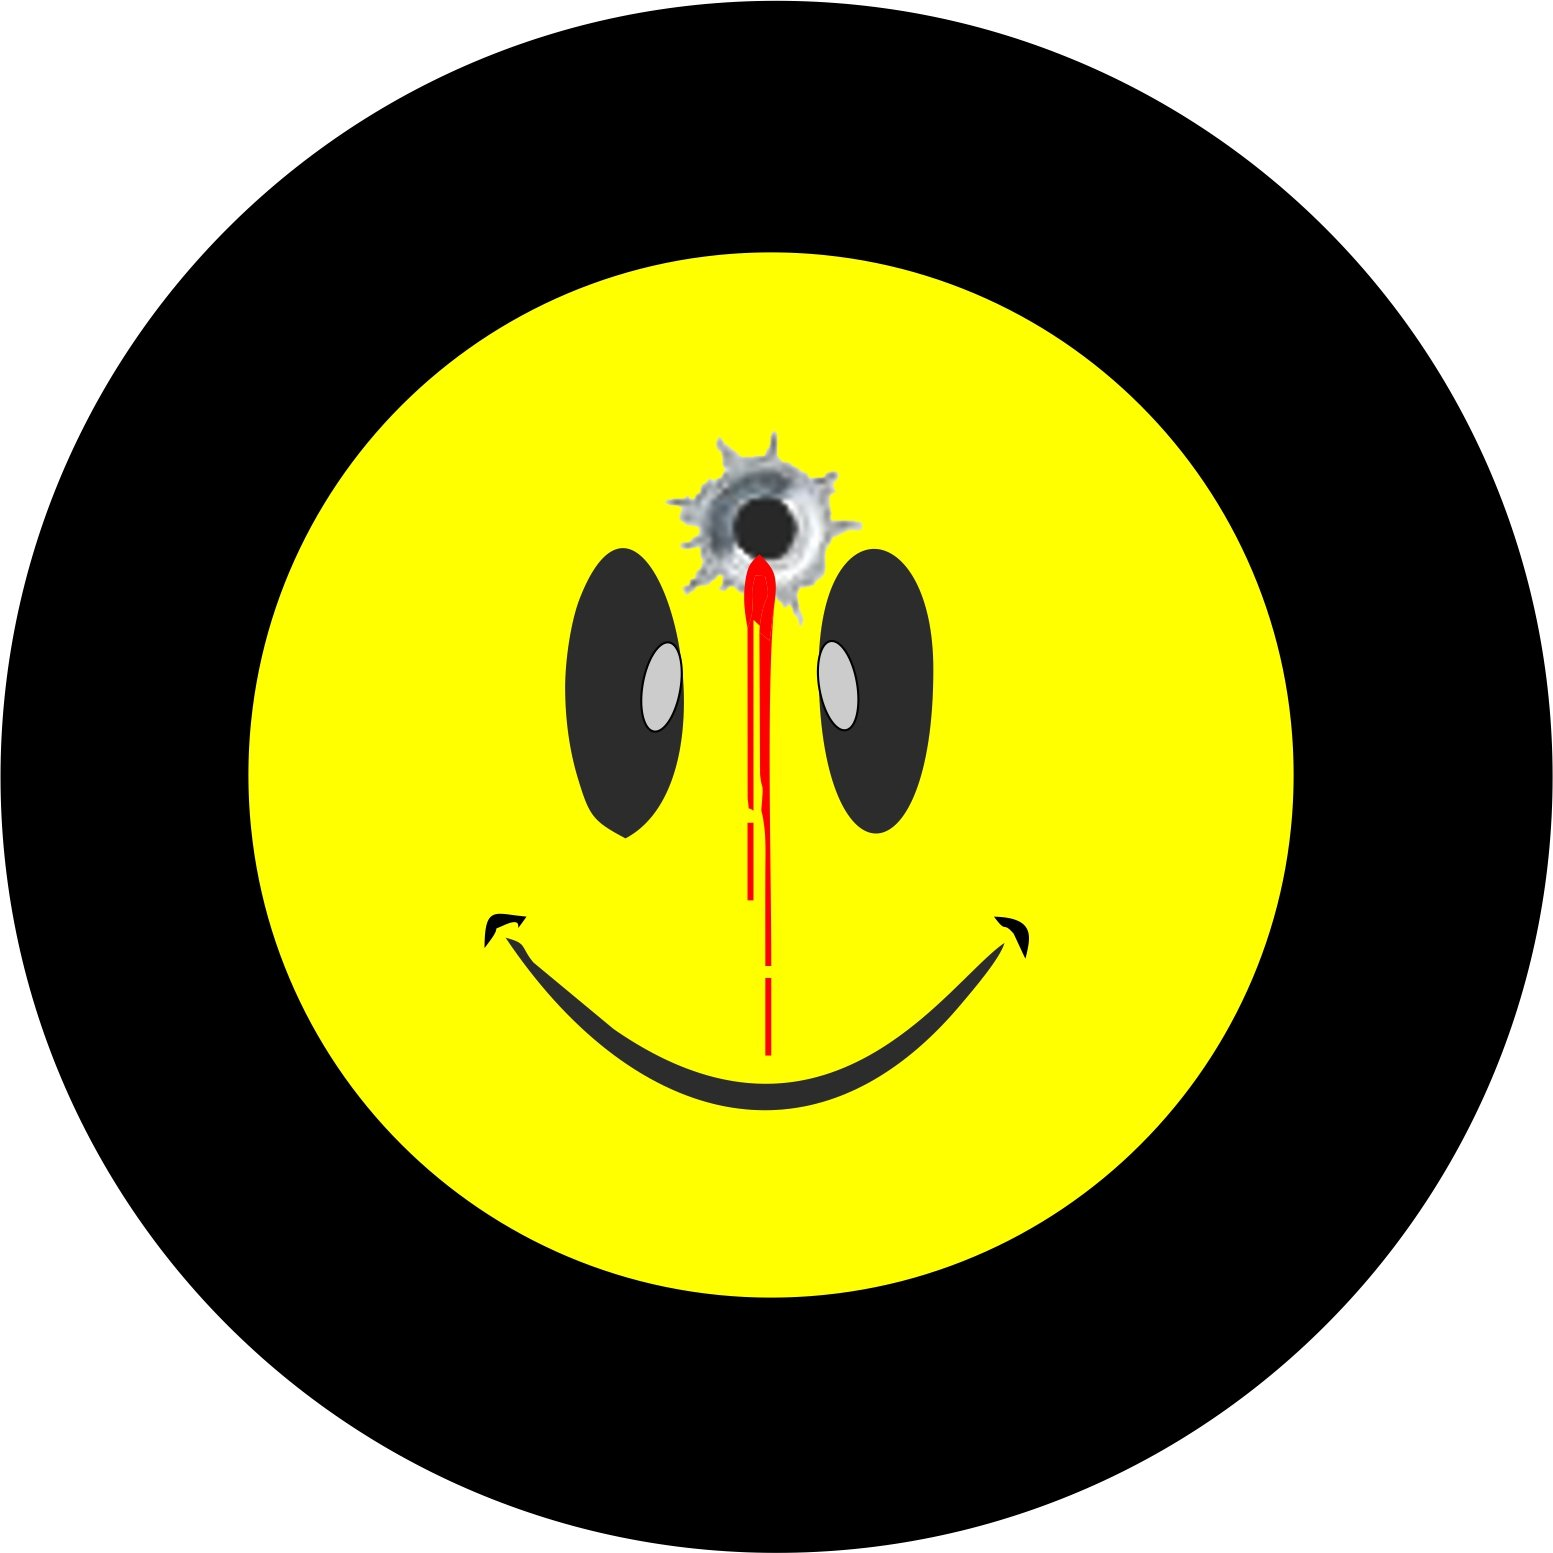 Have A Nice Day Spare Tire Cover on Black Vinyl : new20funny20face from www.teamsportscovers.com size 1553 x 1553 jpeg 101kB